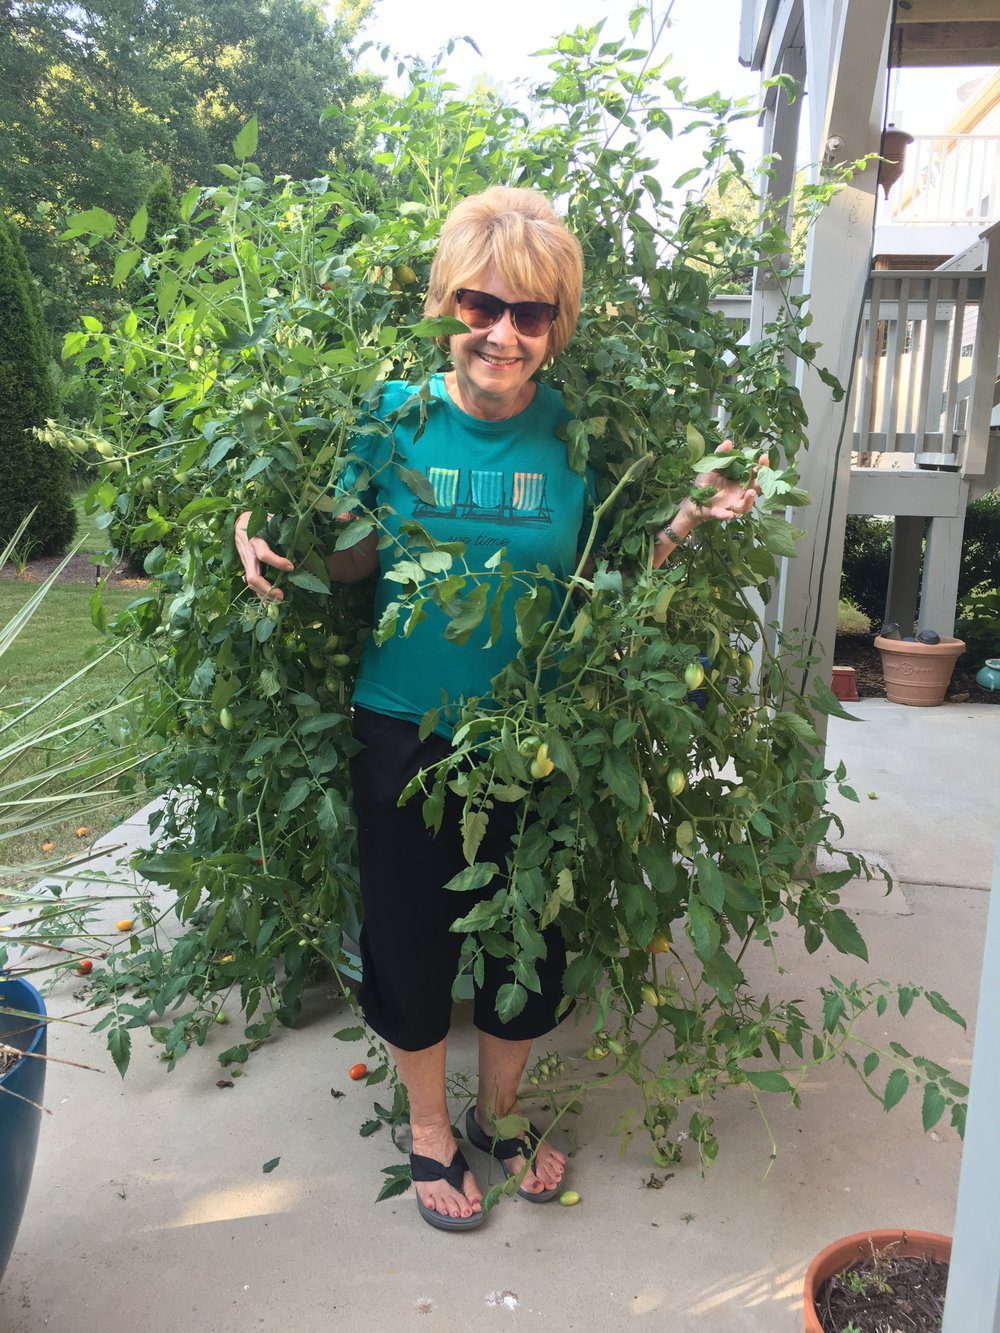 Donna Fox is happy in her garden, and why not? She